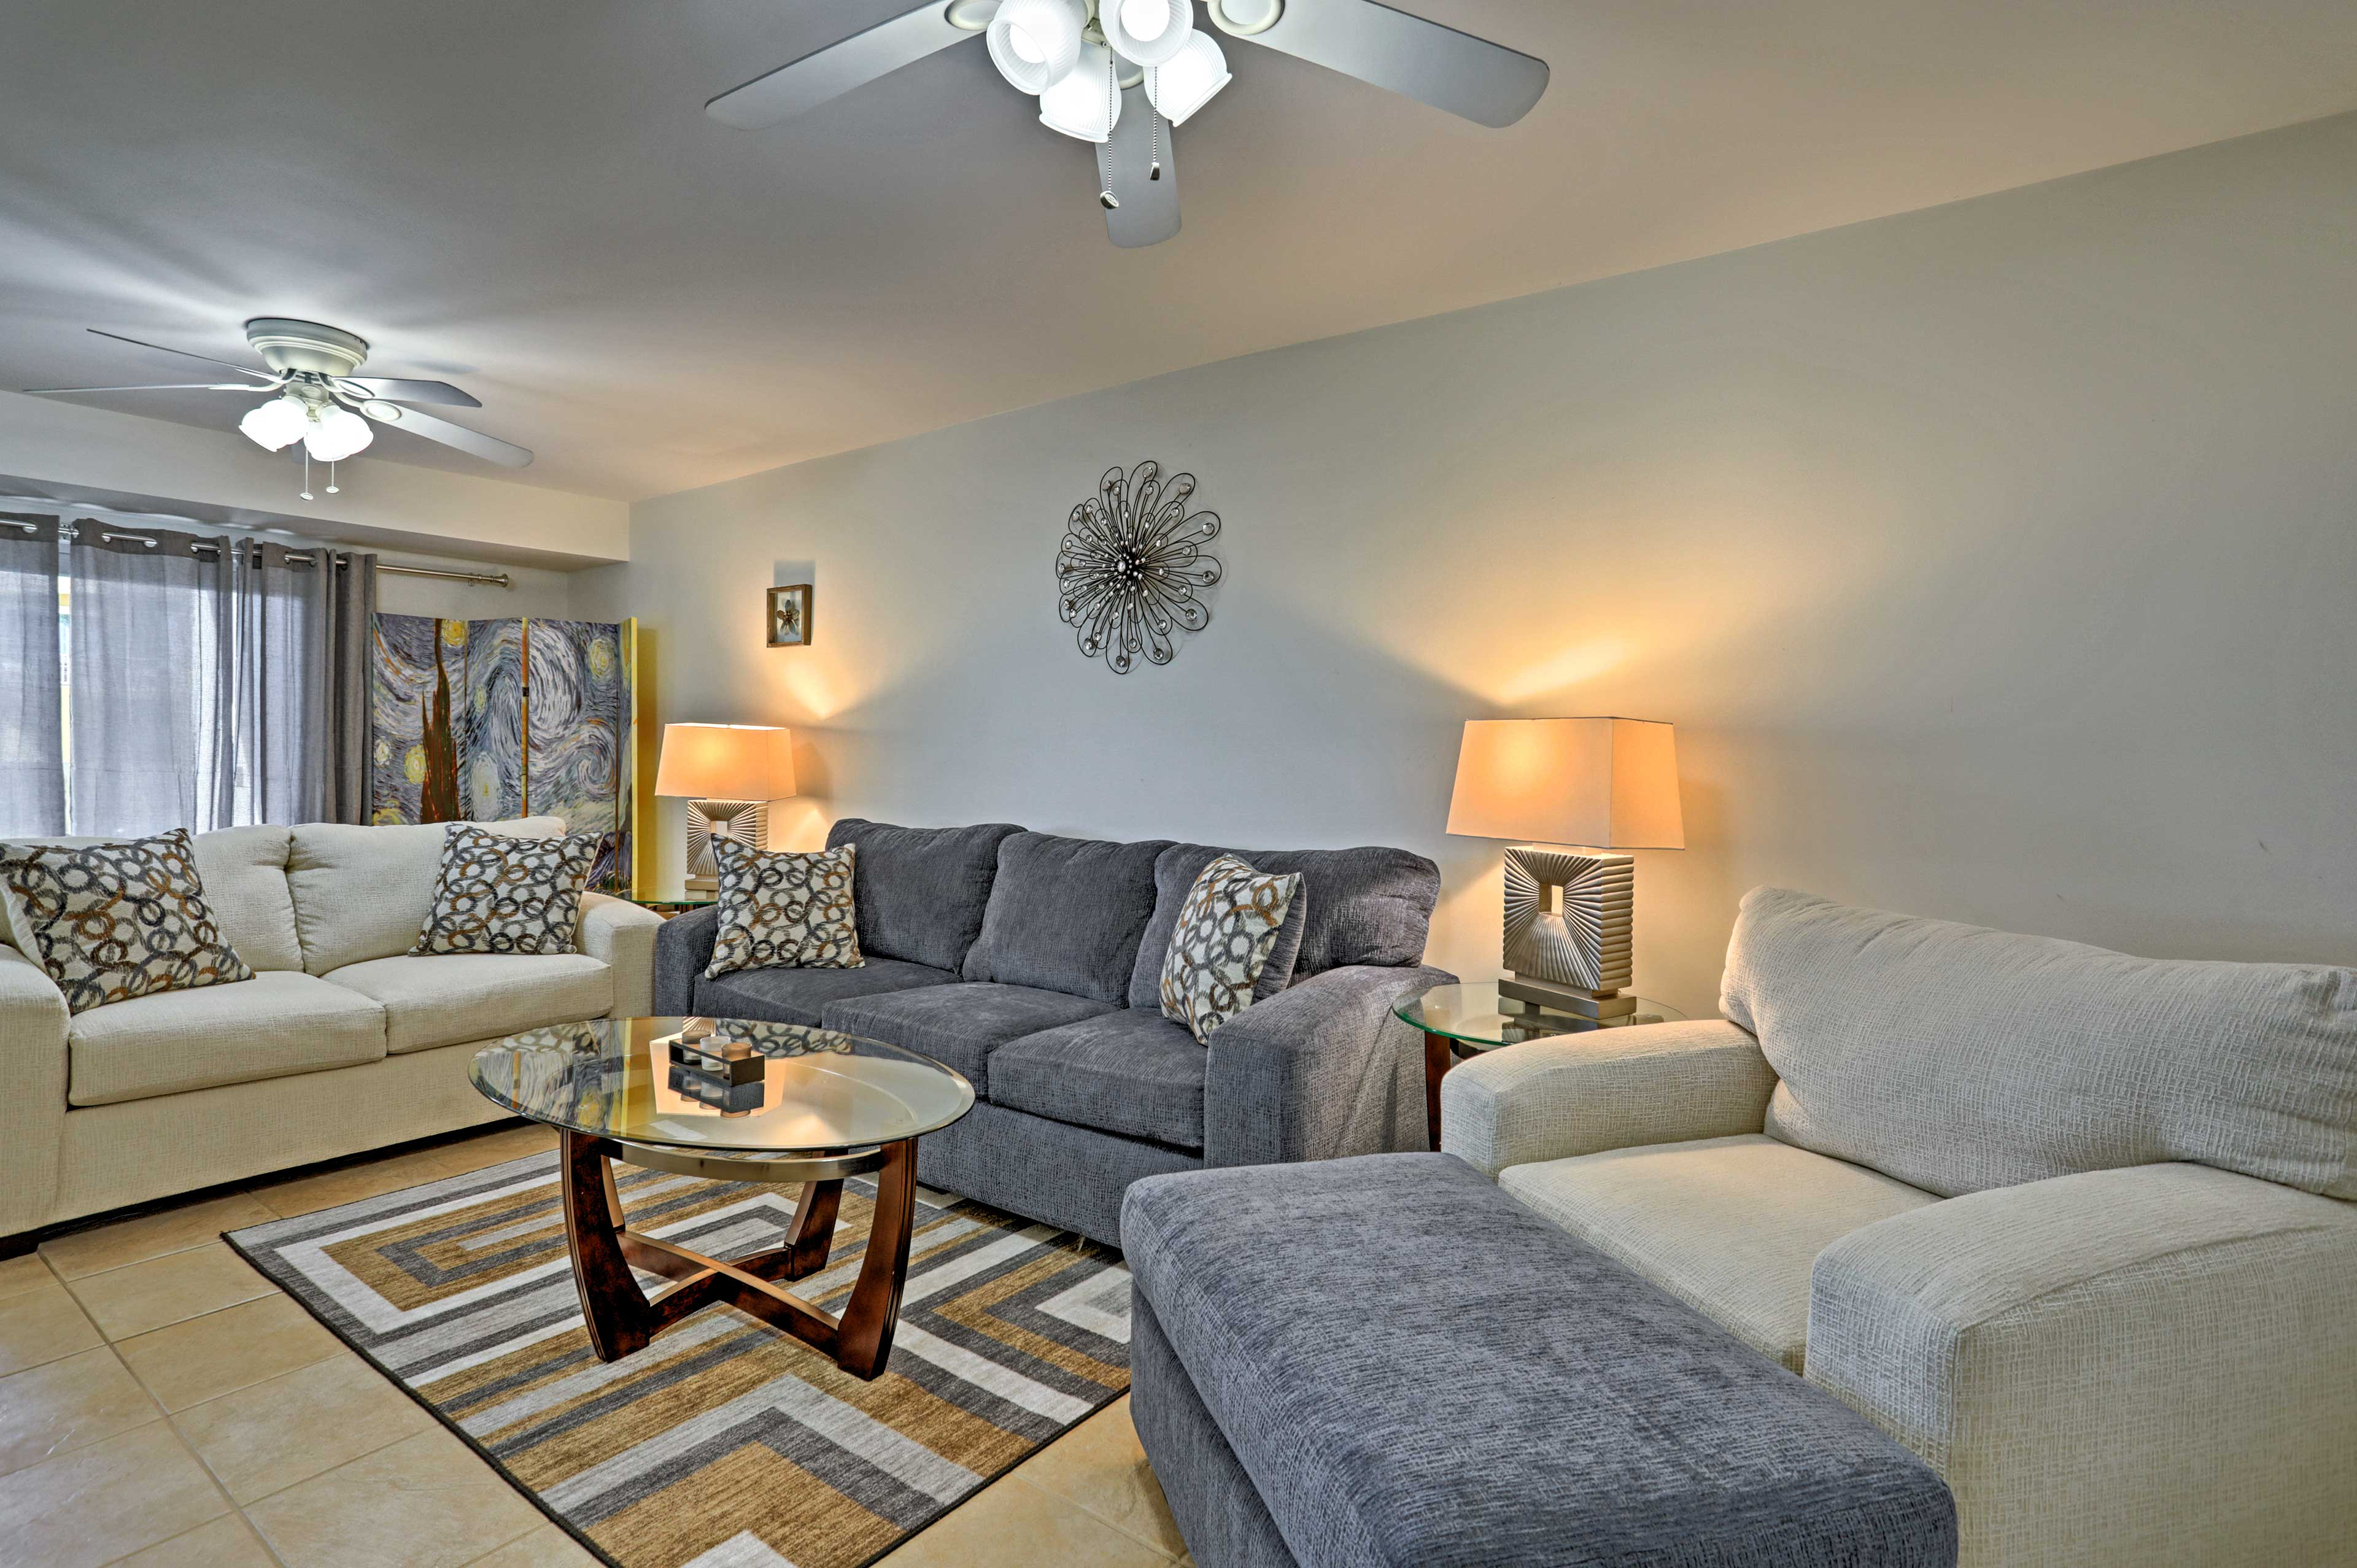 This condo is beautifully decorated and features comfortable furnishings.